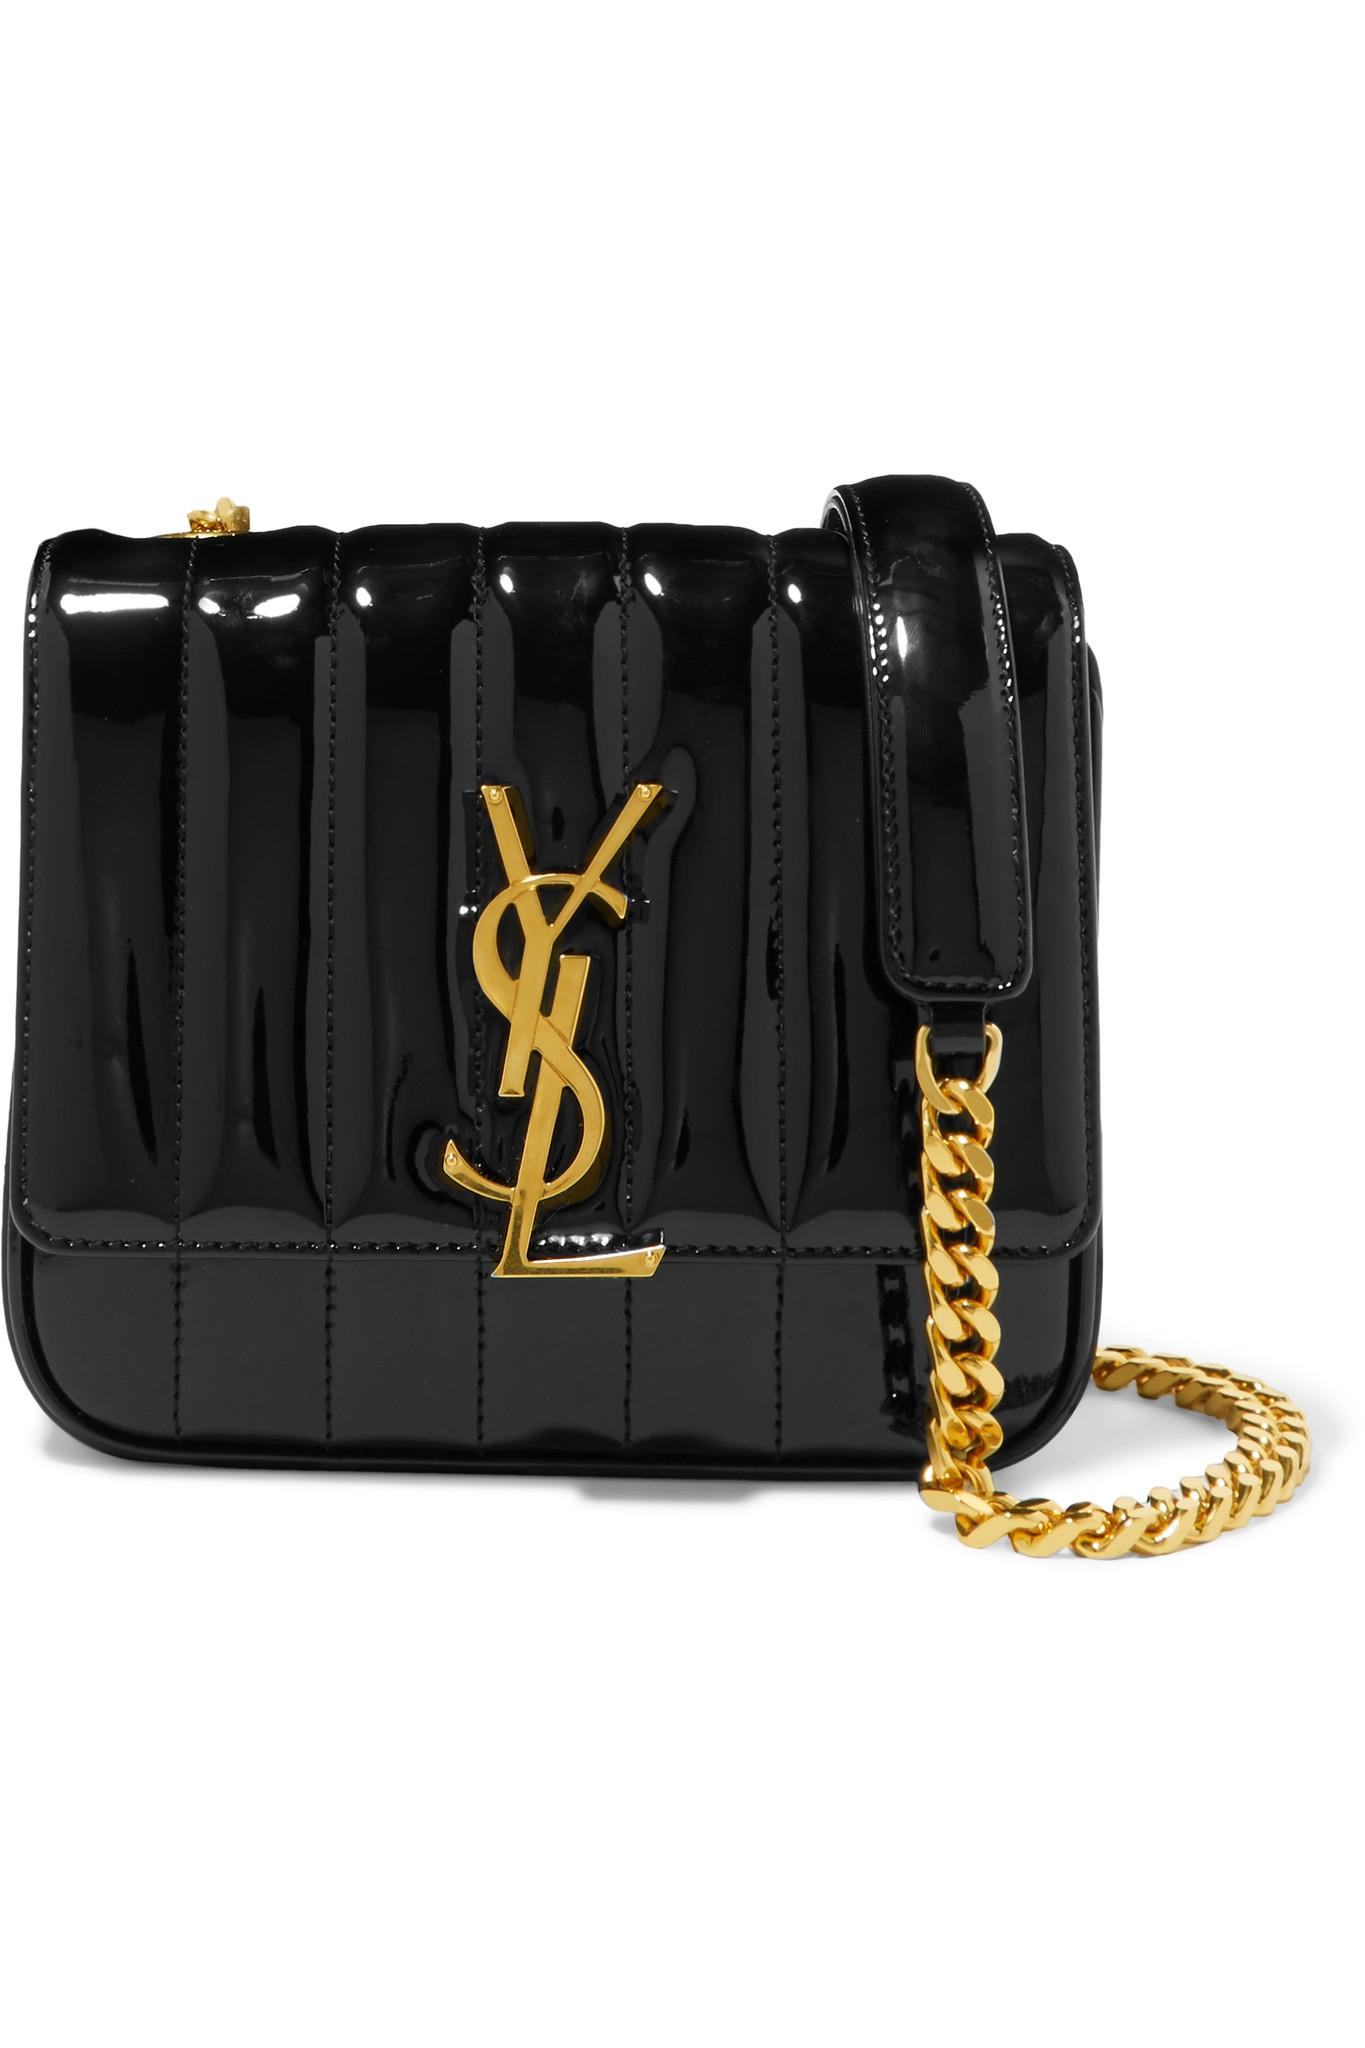 7e5c6f4564 Lyst - Saint Laurent Black Striped Stripe Vicky Leather Shoulder Bag ...